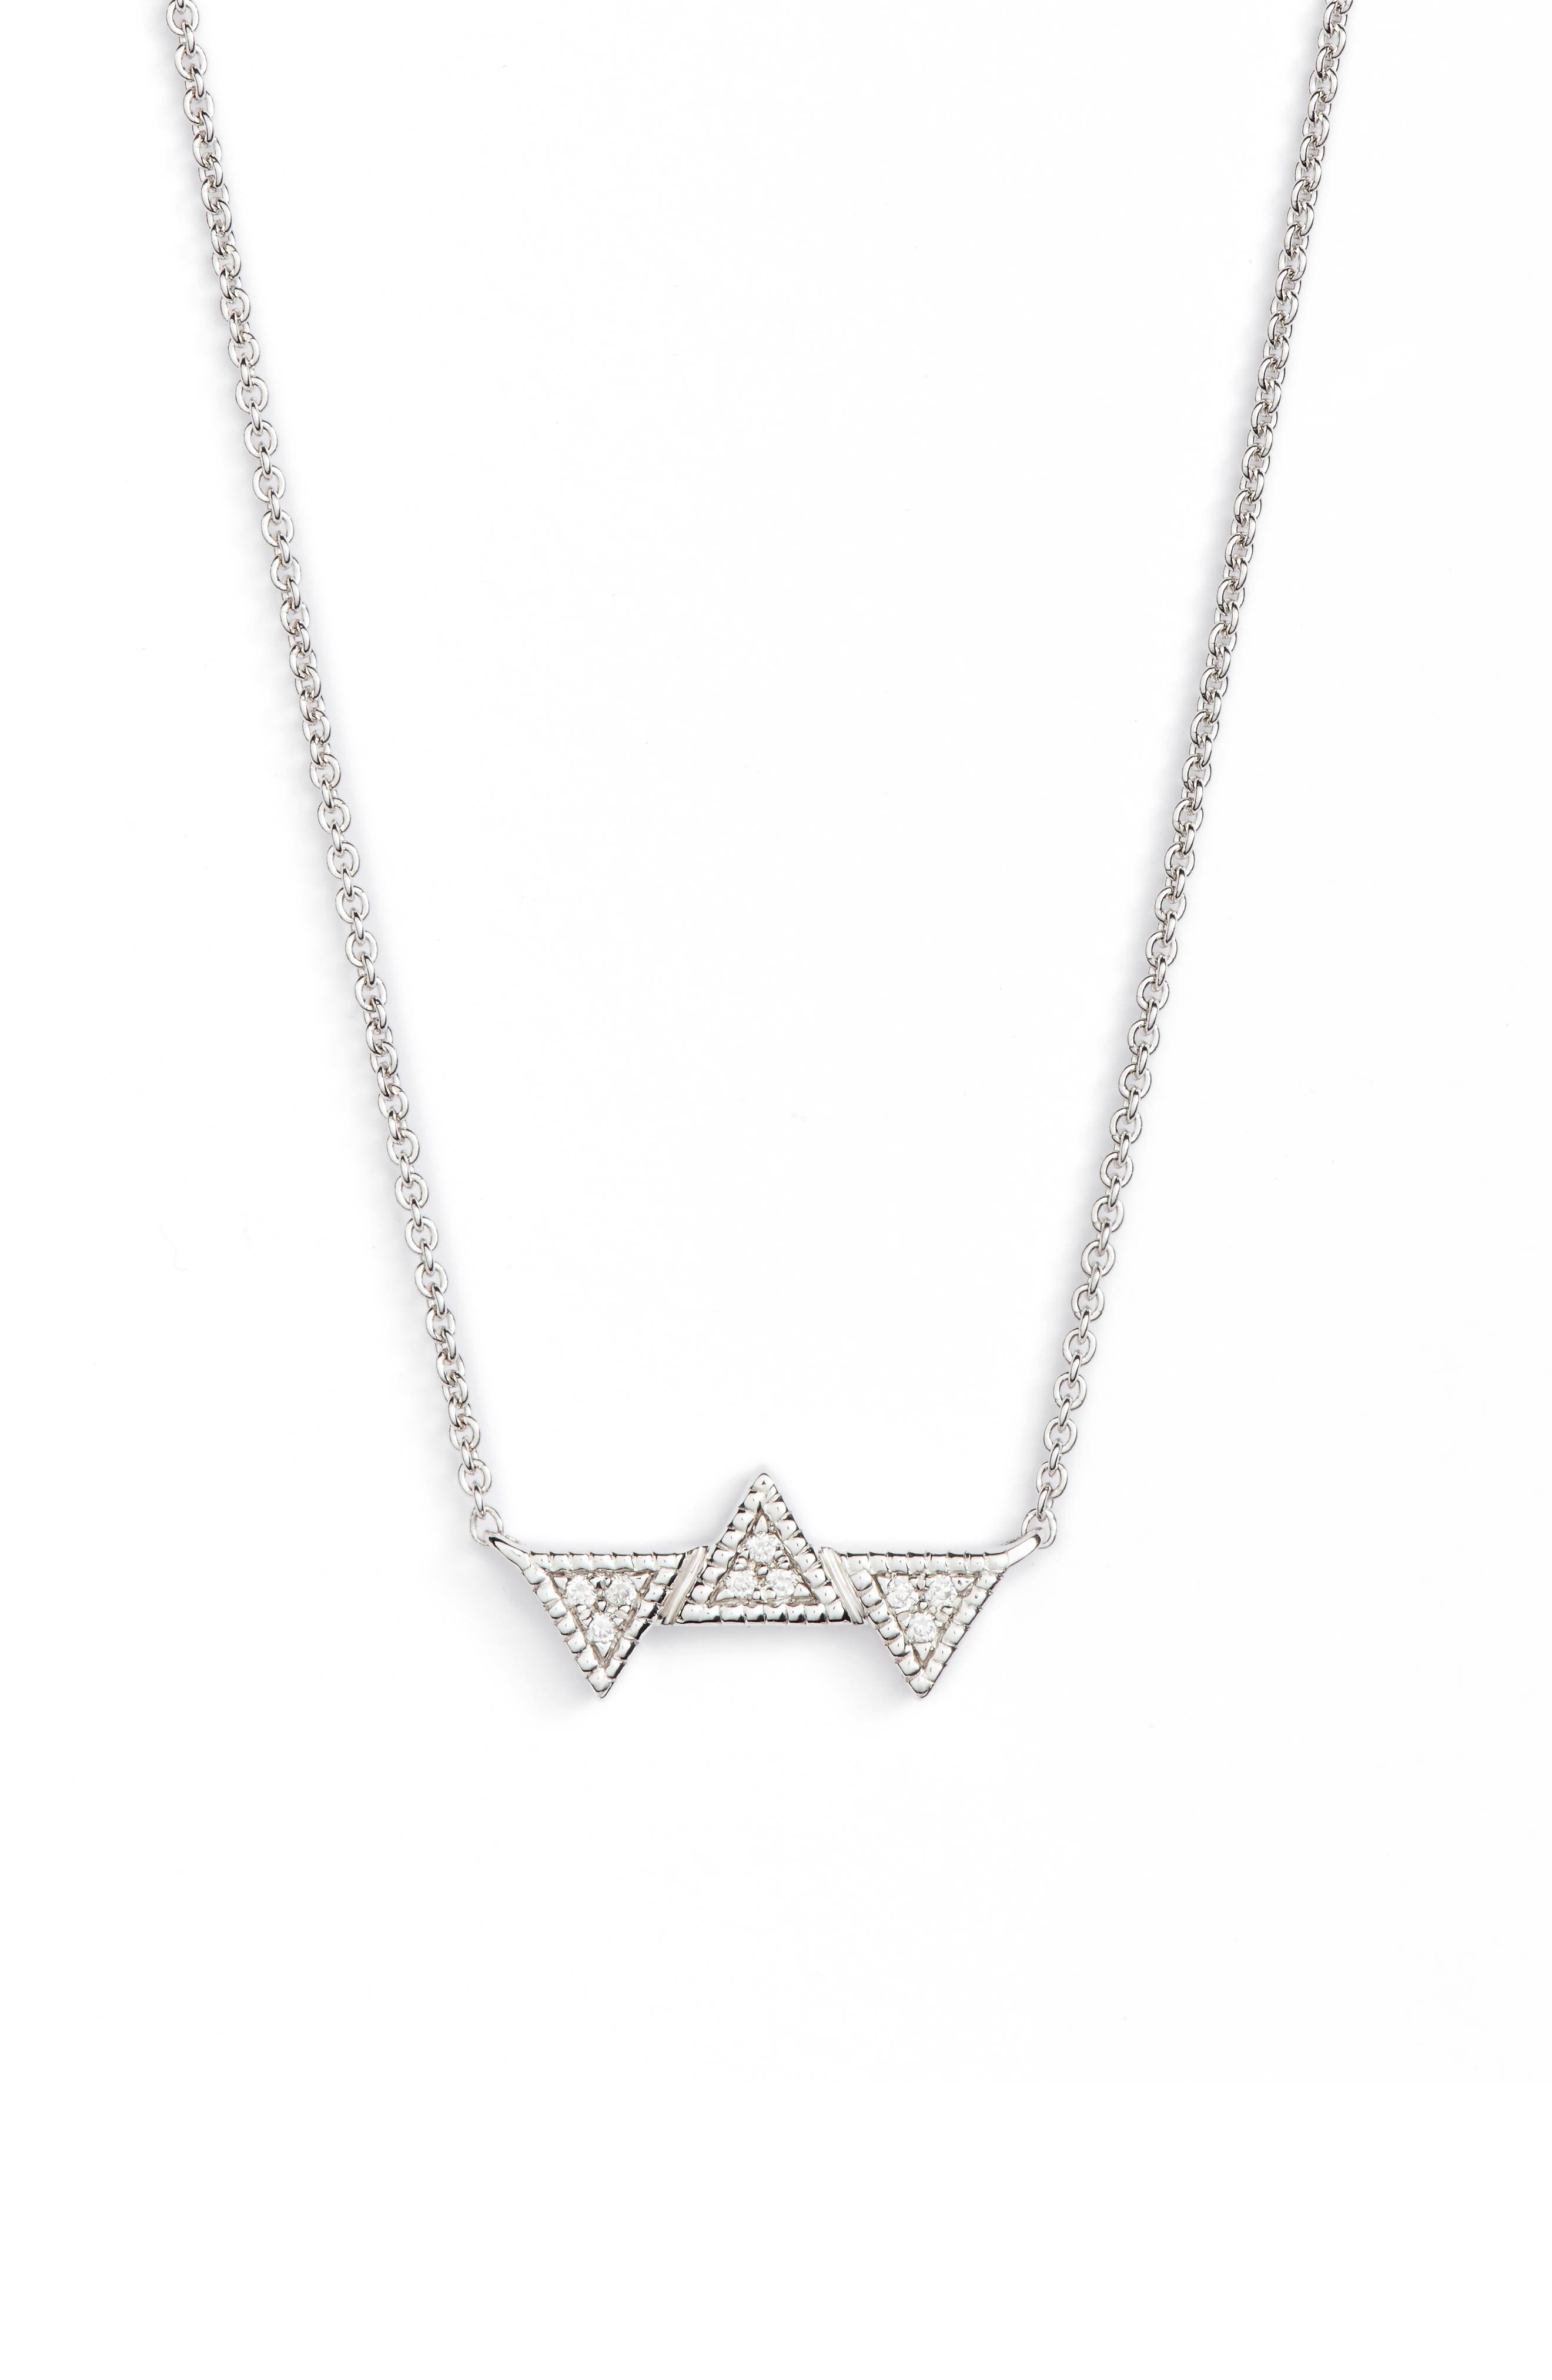 Main Image - Dana Rebecca Emily Sarah Diamond Pendant Necklace